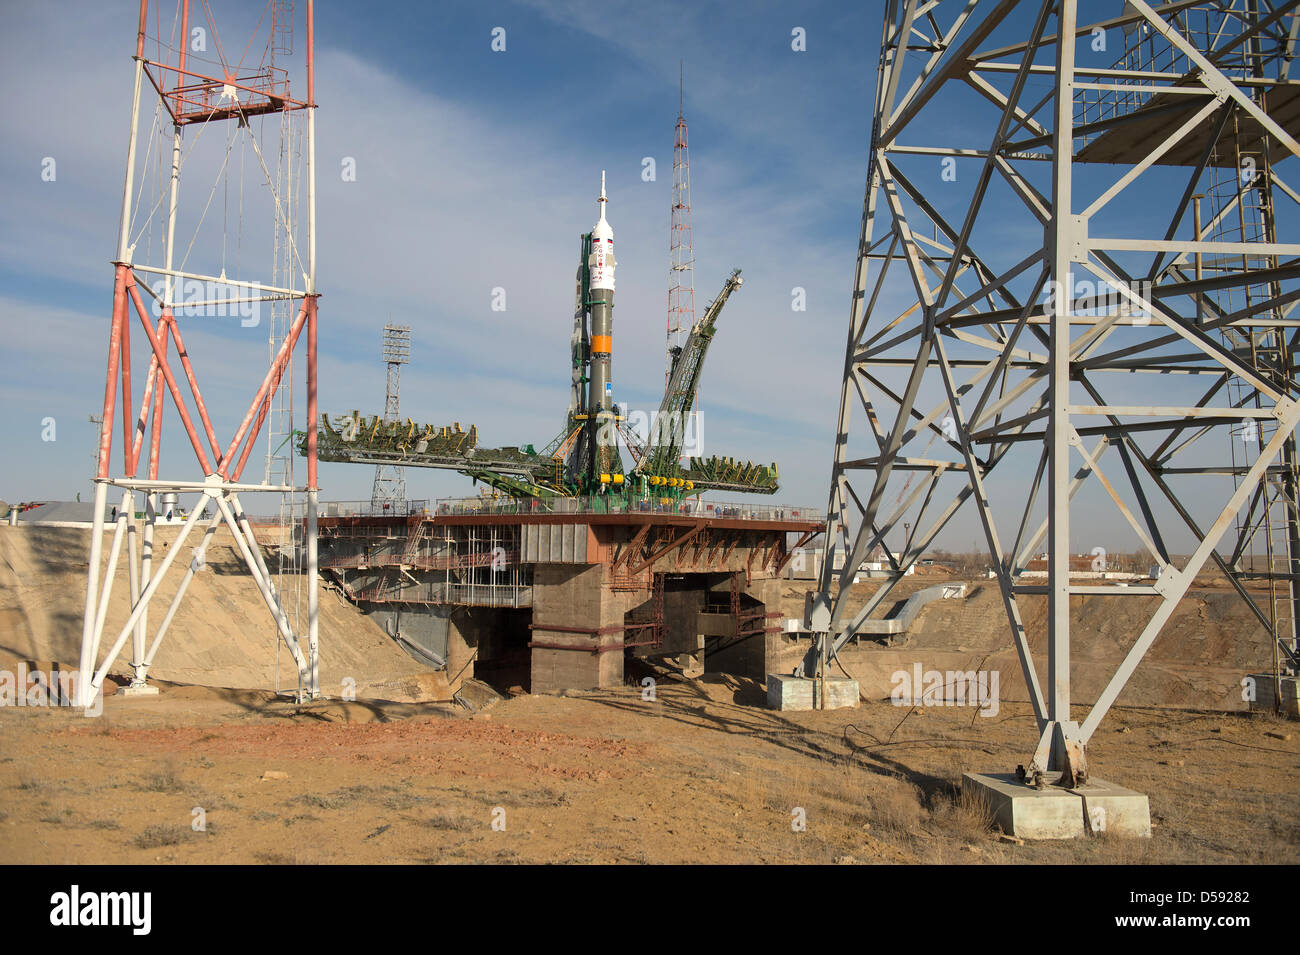 The Russian Space Agency Soyuz TMA-08M spacecraft is moved into position at the launch pad at the Baikonur Cosmodrome Stock Photo